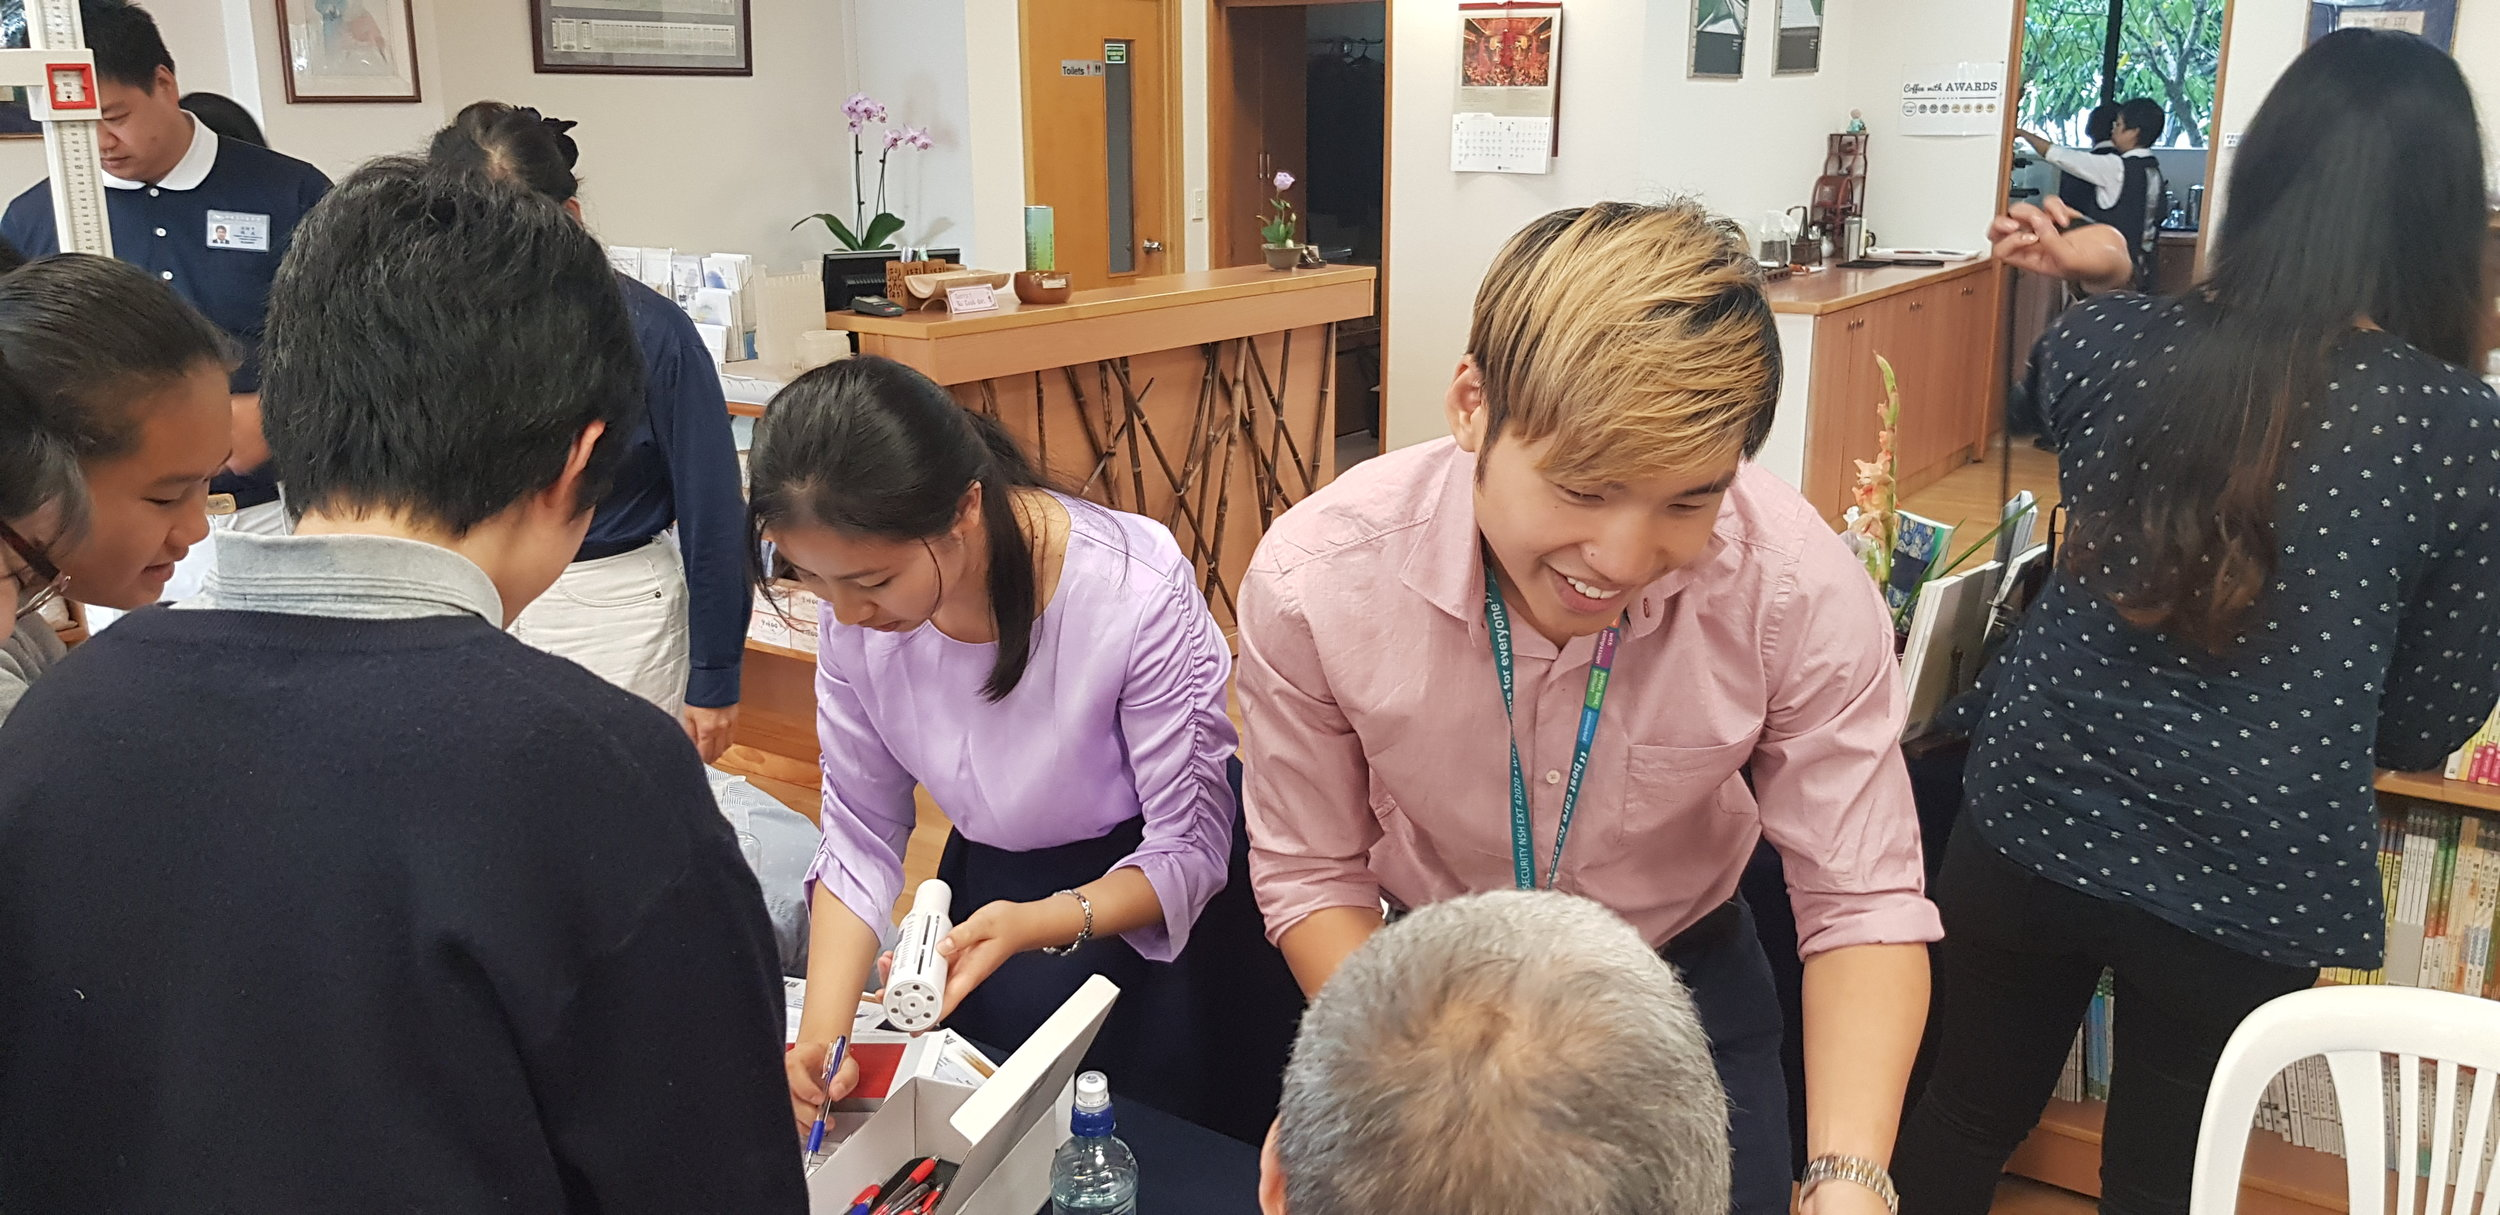 April Community Event - Tzu Chi Foundation - Sat 27 April 2019Buddhist Compassion Relief Tzu Chi Foundation, 9 Springs Road, East Tamaki